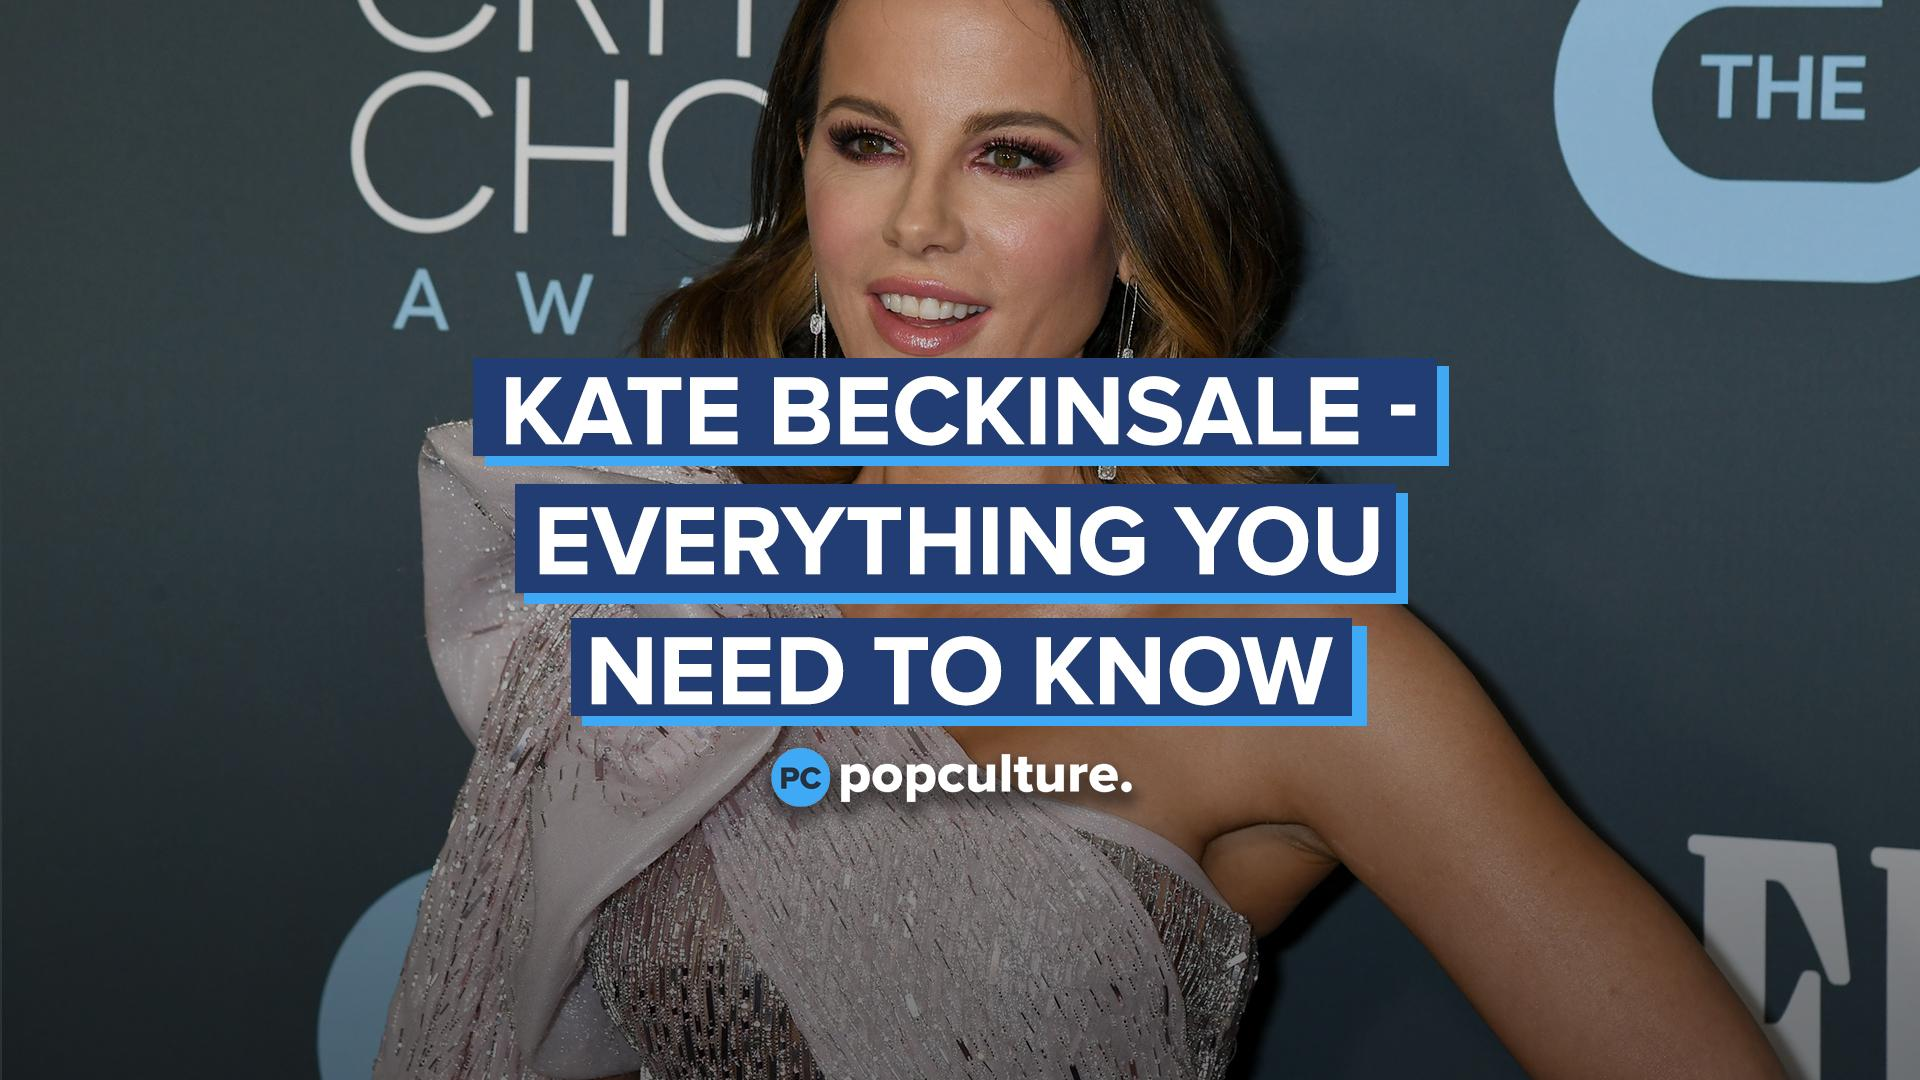 Kate Beckinsale - Everything You Need to Know screen capture